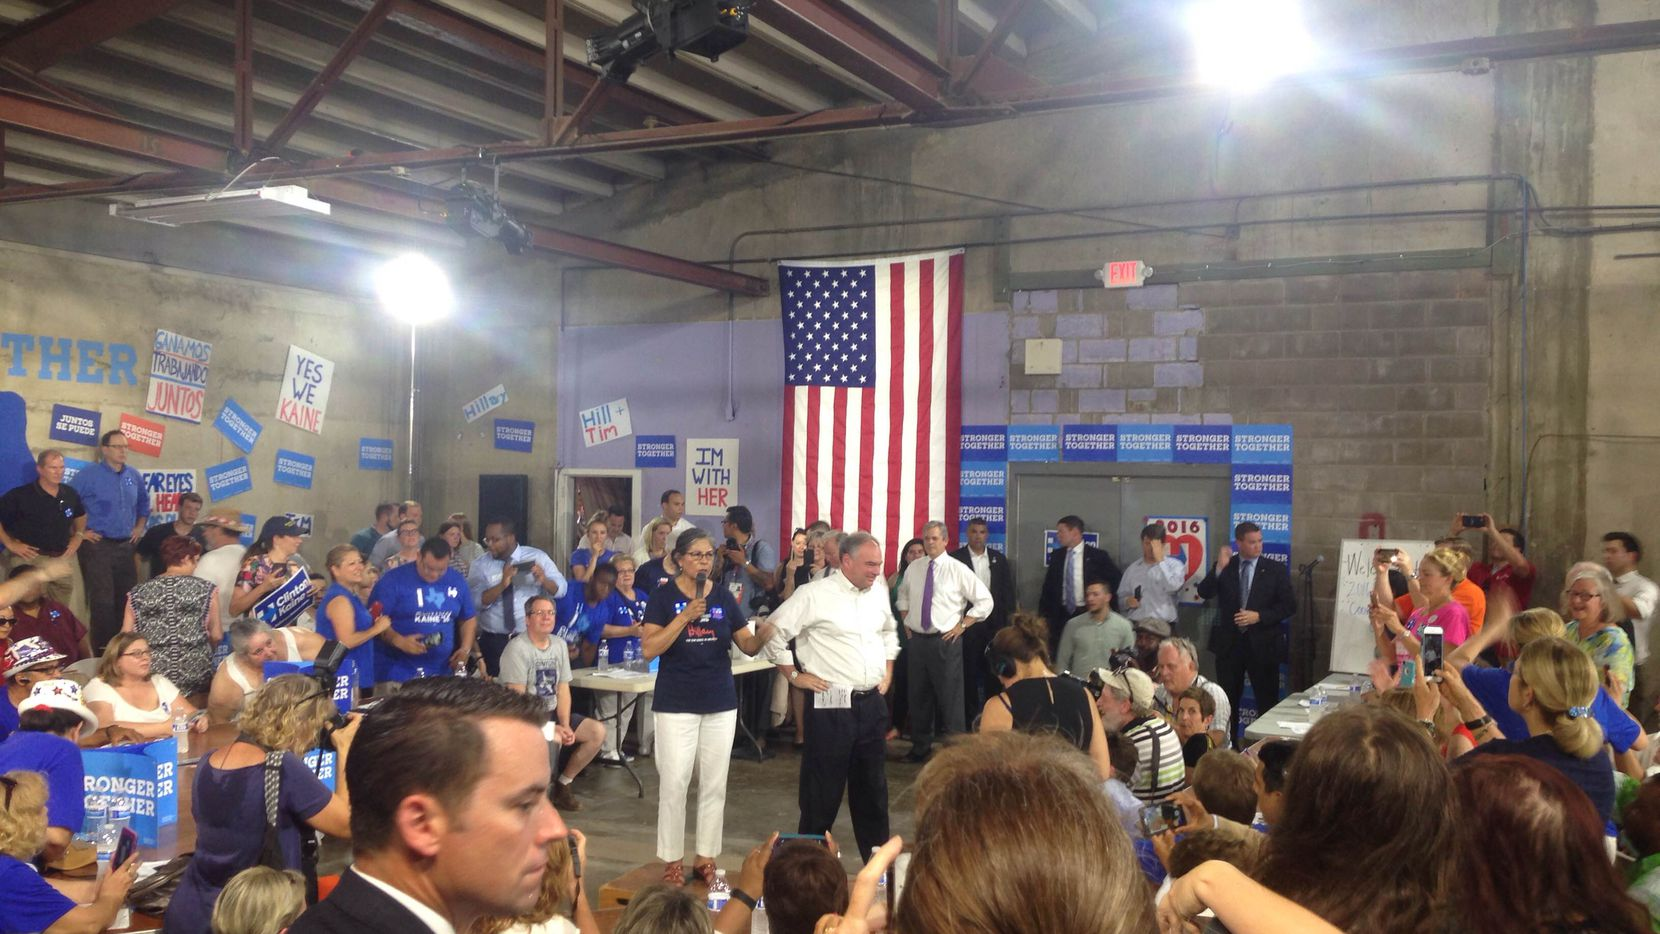 Vice presidential candidate Tim Kaine gets ready to speak at an event in Austin on Tuesday.